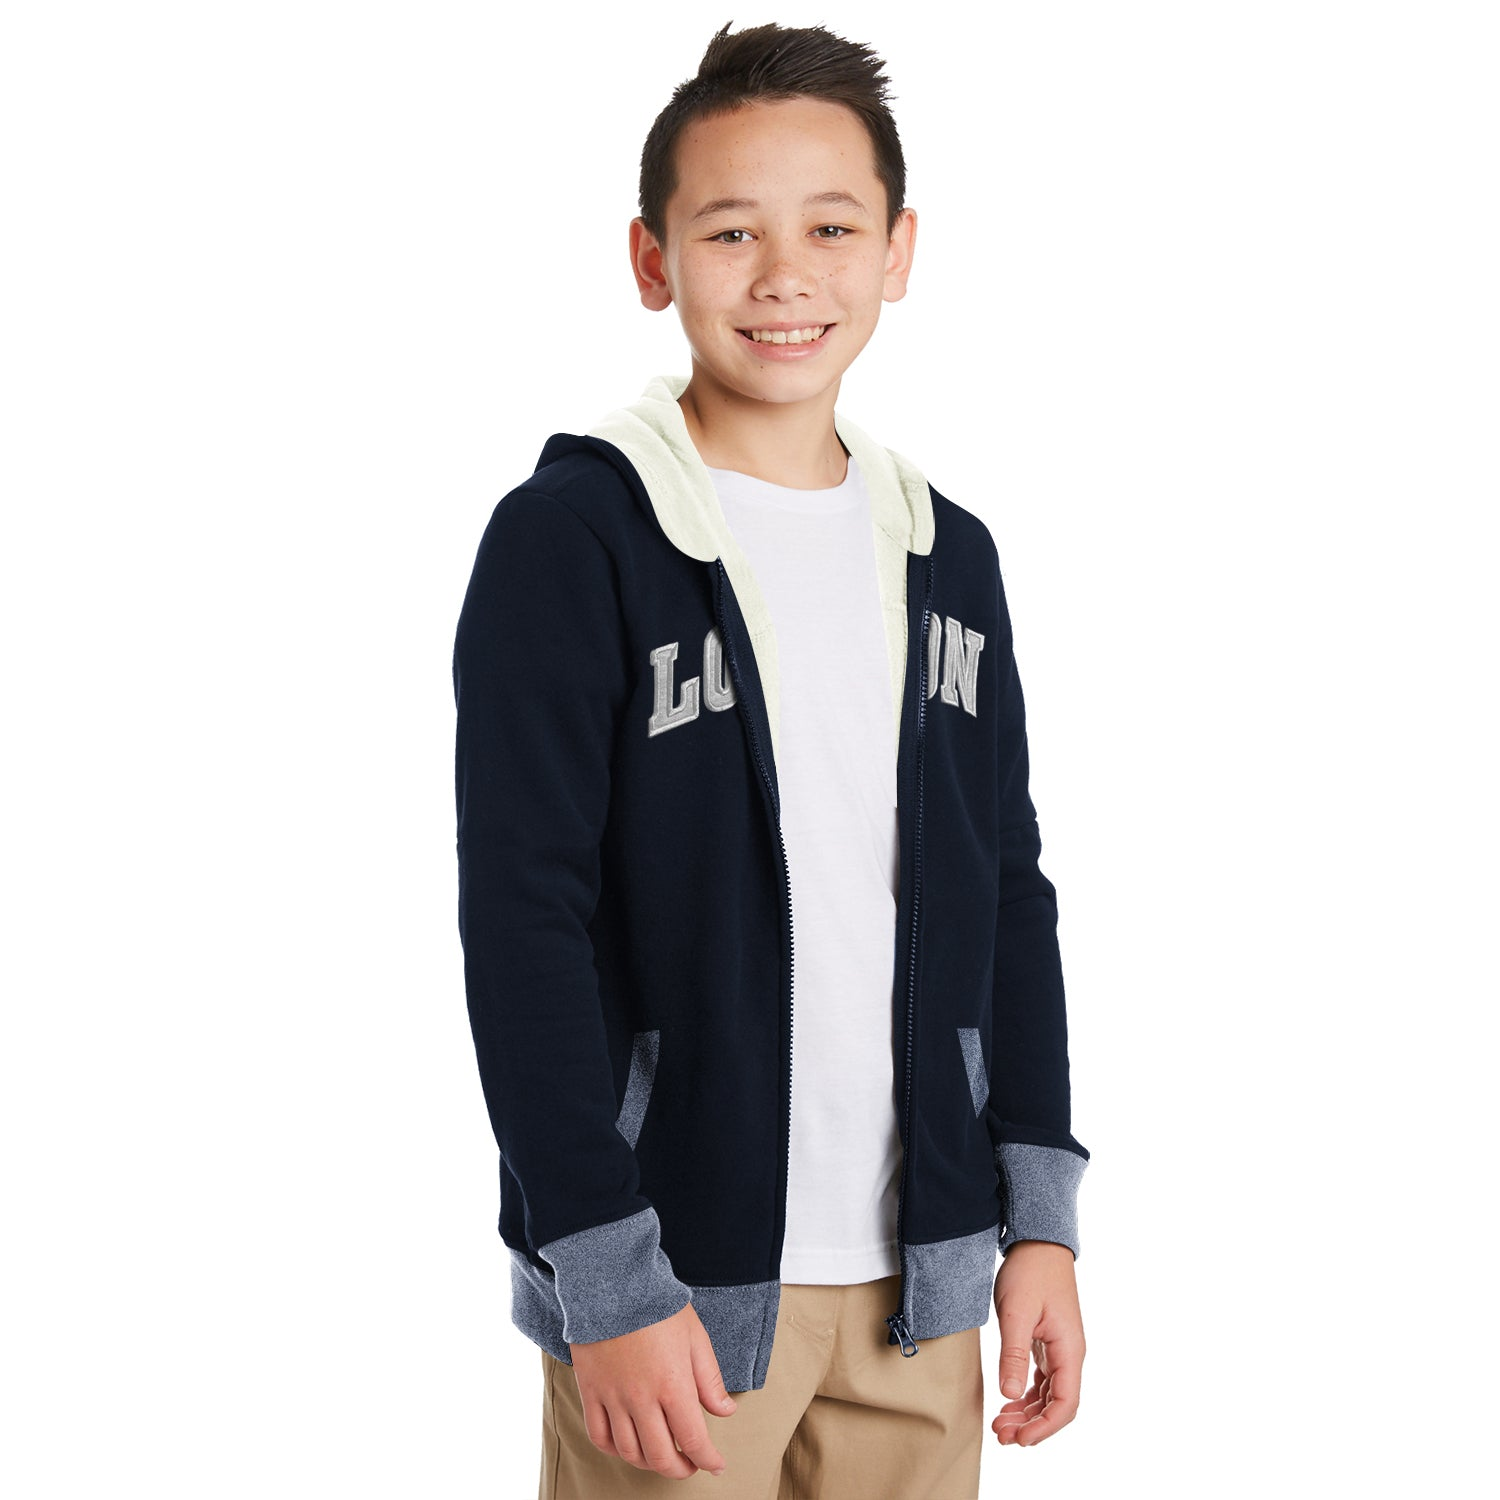 TH Fleece Quilted Zipper Hoodie For Kids-Dark Navy with Grey-BE10889